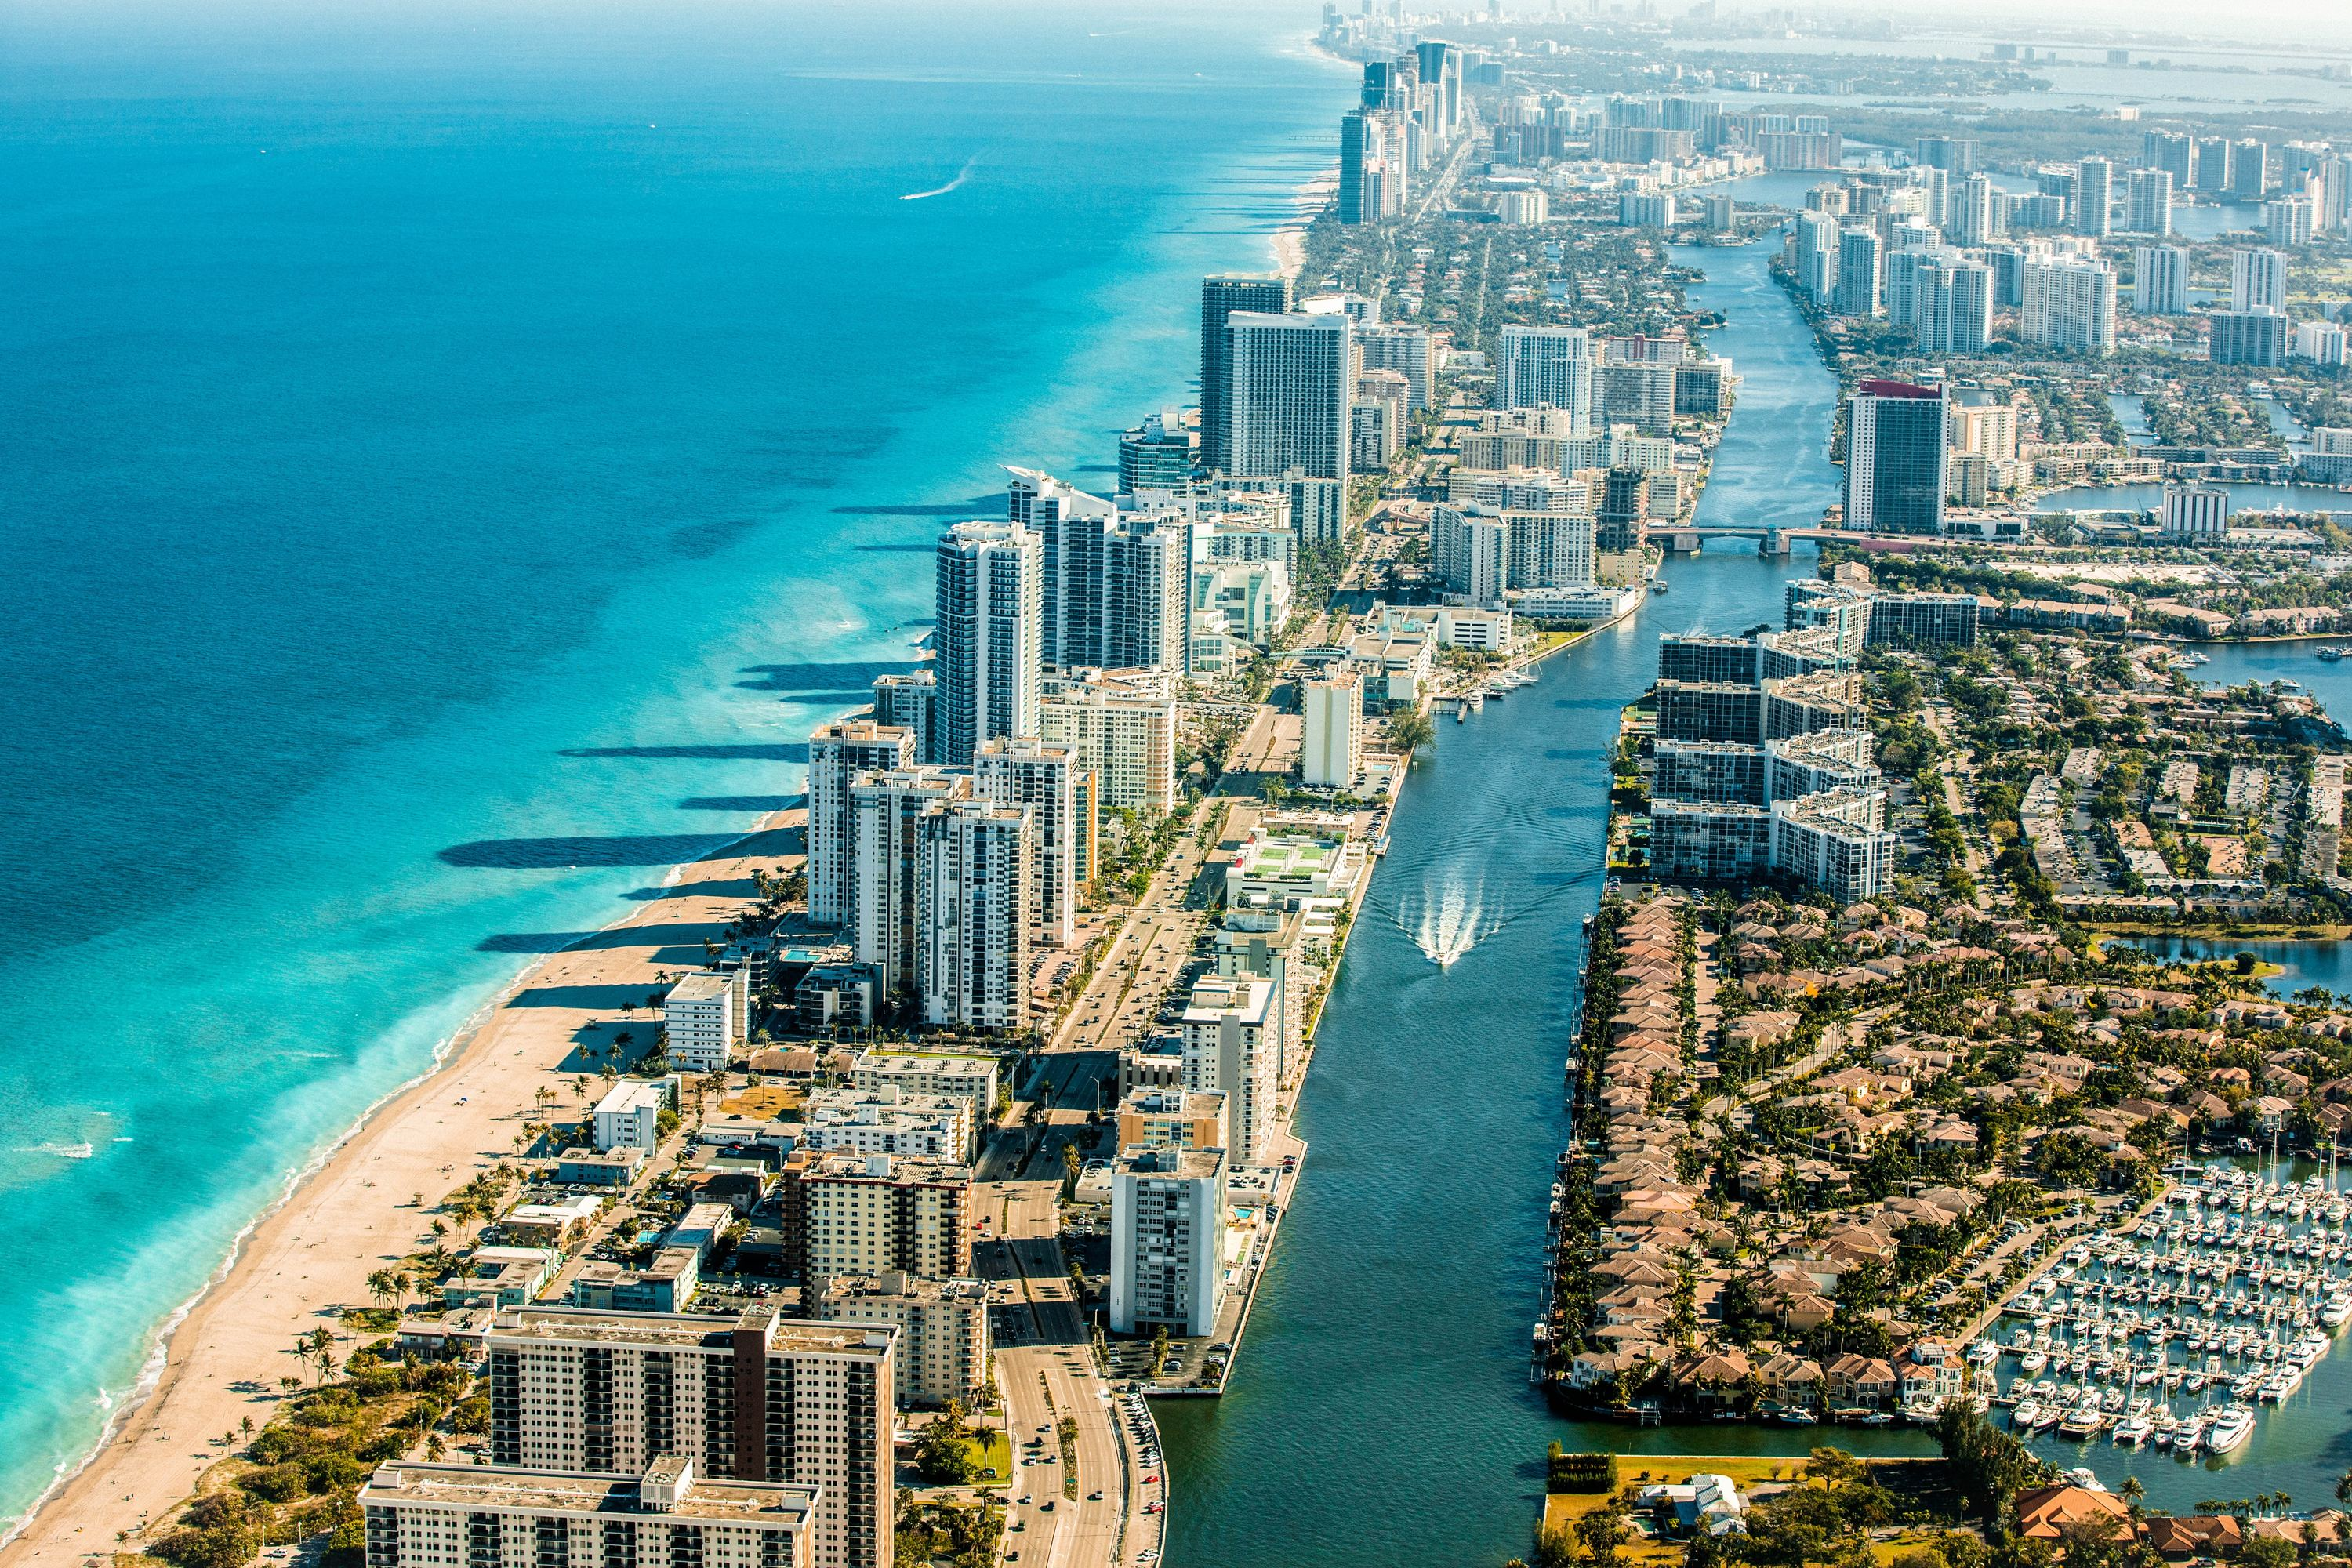 Here's how Miami houses might stay afloat in the face of rising sea levels